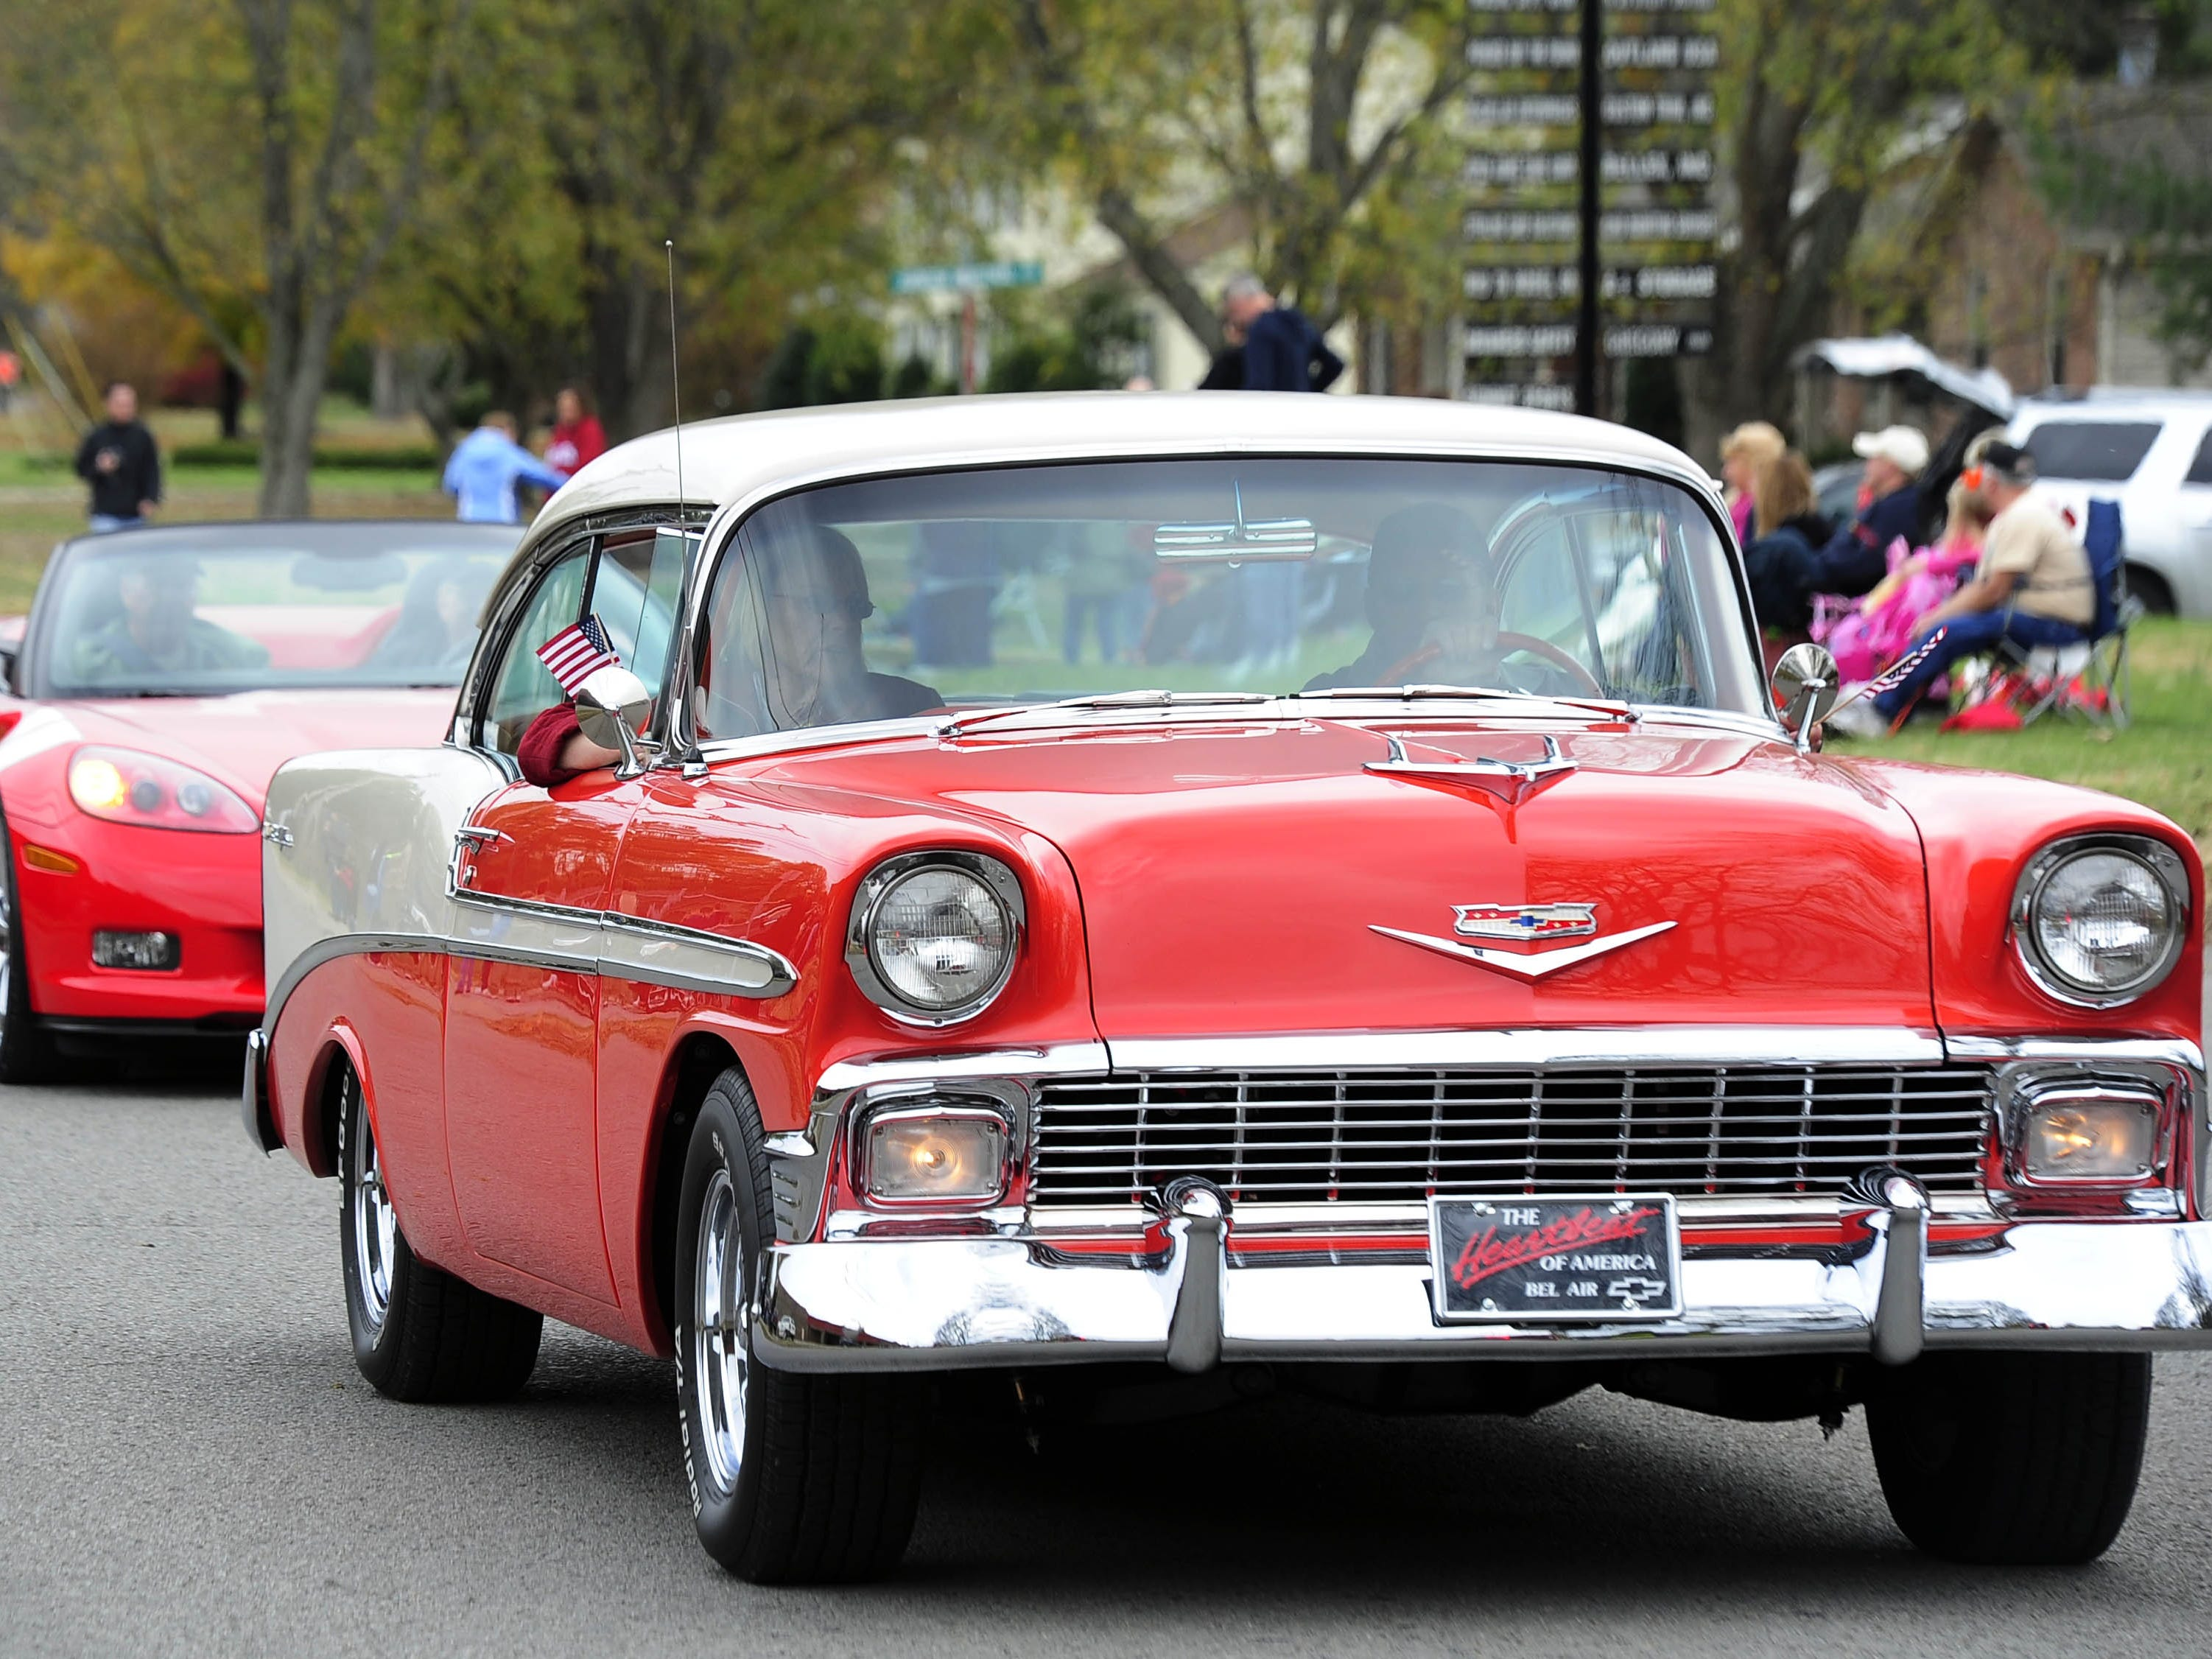 A collection of classic cars were part of the Nolensville Veterans Day Parade on Nov. 9, 2013.